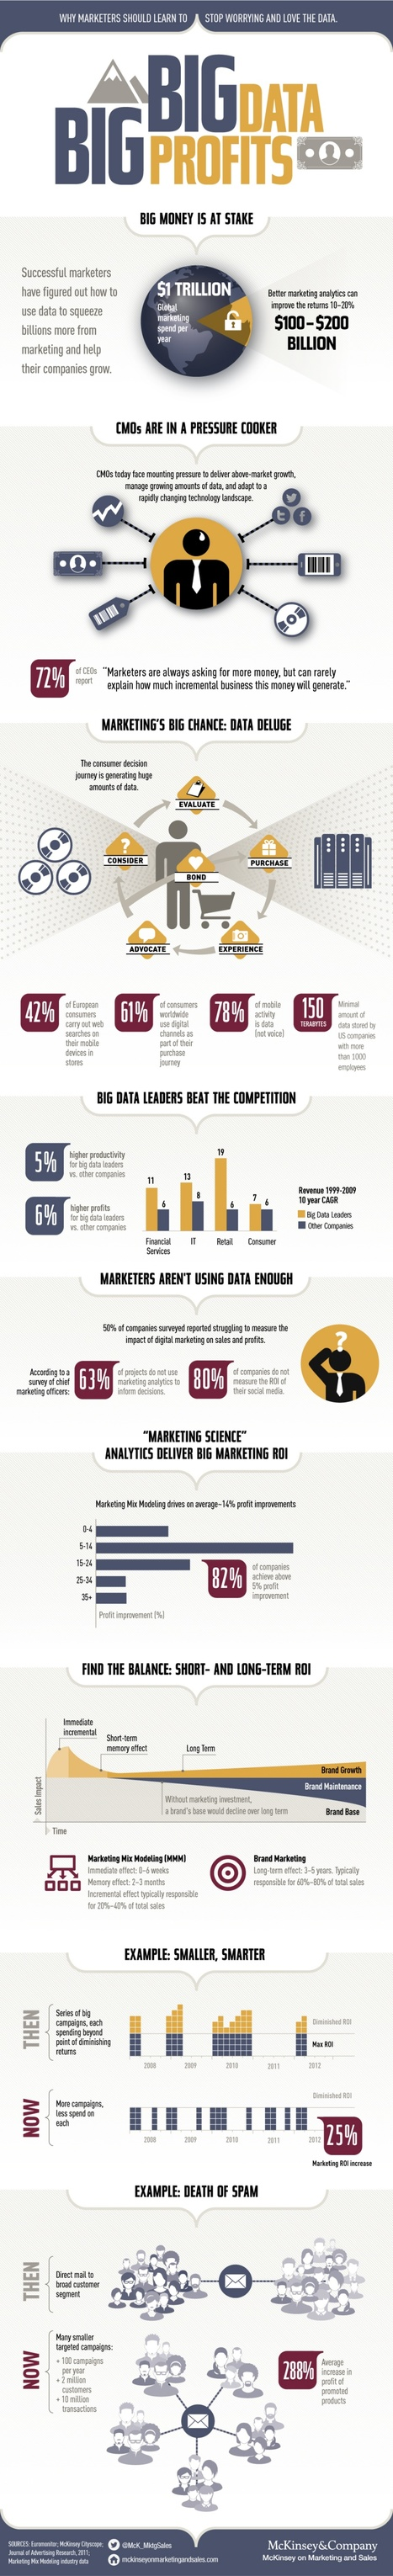 Big Data & Big Profits: The One Infographic That Will Show You How to Find $200 Billion | ten Hagen on Social Media | Scoop.it